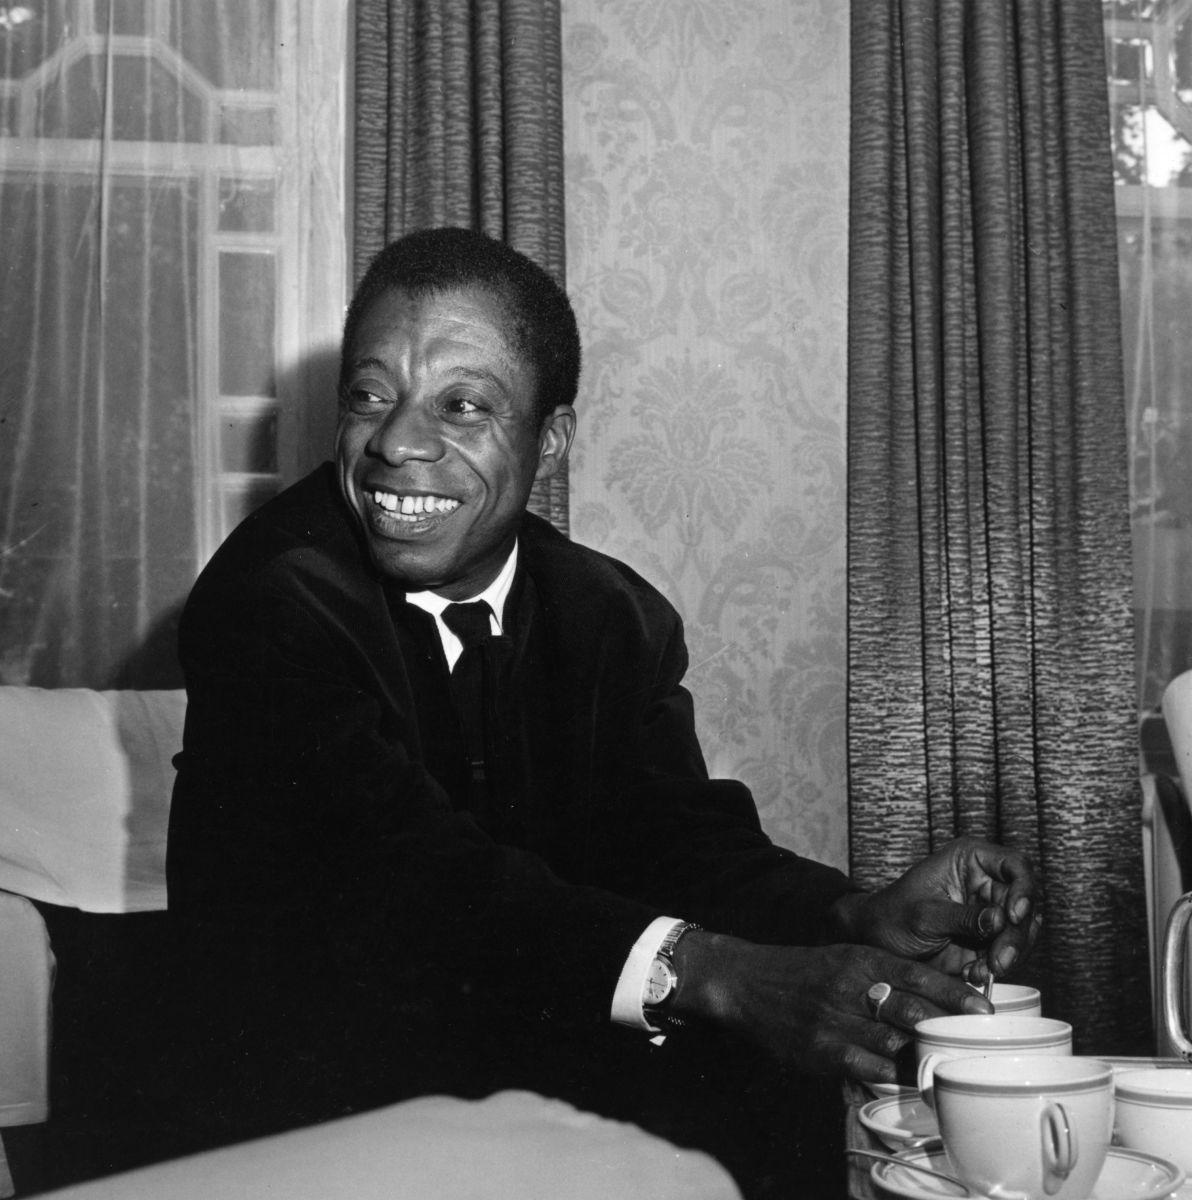 Gap-Toothed Grinners: American writer and Civil Rights activist James Baldwin (1924 - 1987) at the Whitehall Hotel, Bloomsbury Square, London.   (Photo by Jenkins/Getty Images)